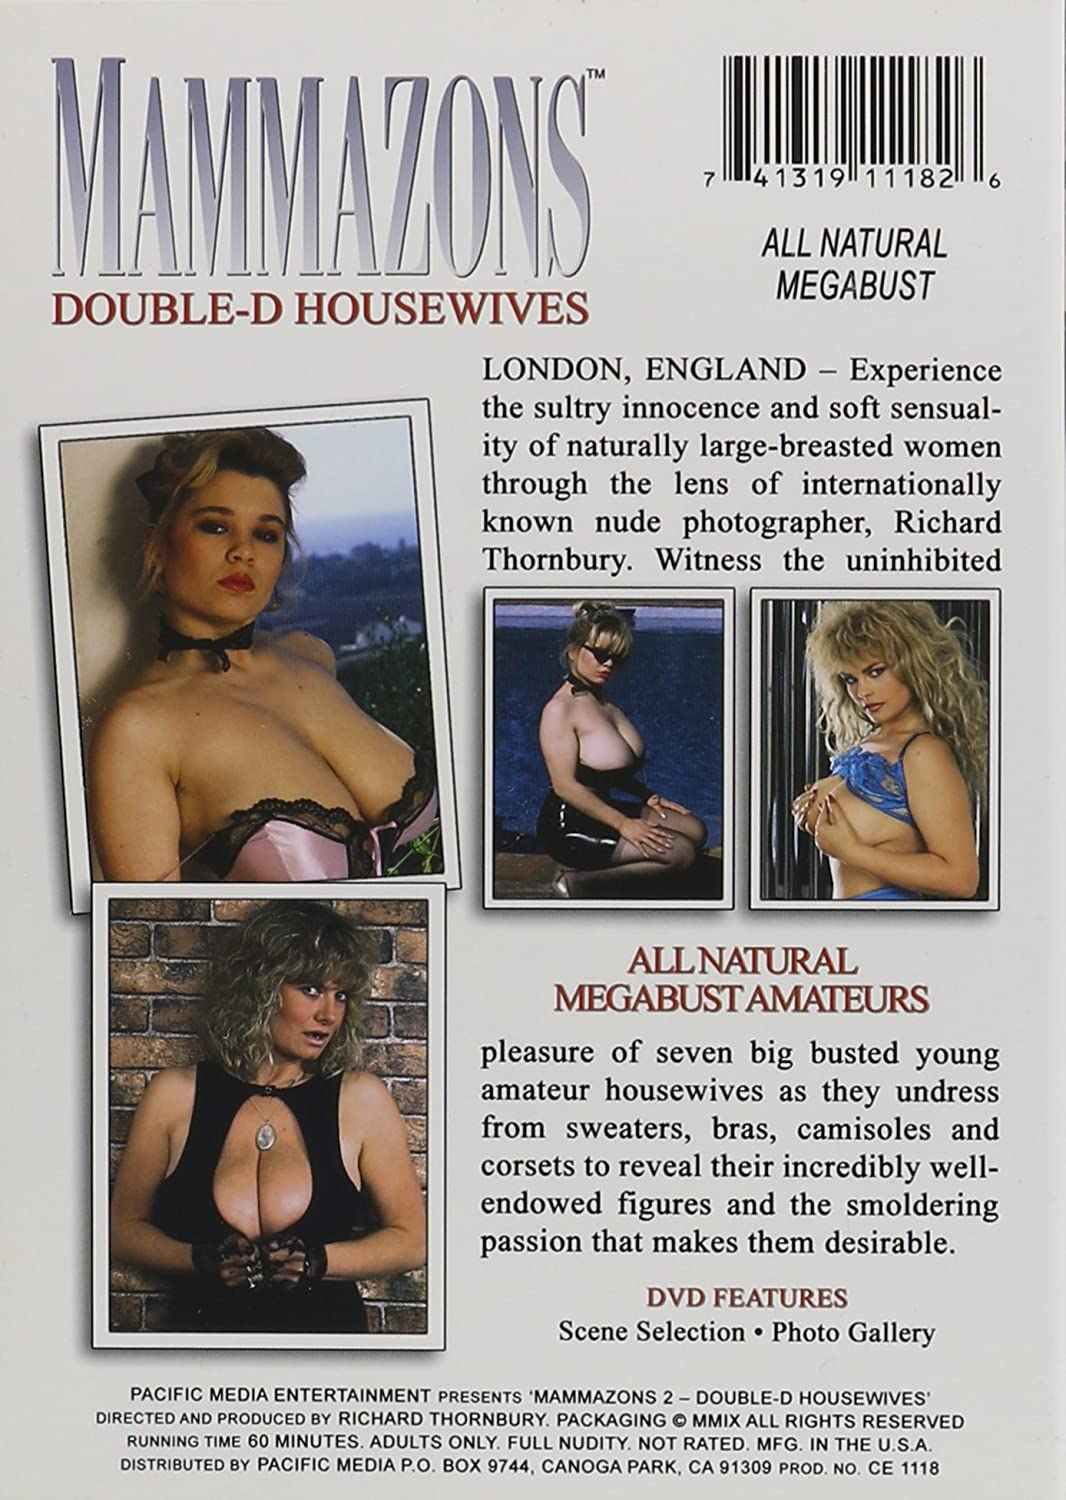 Nude amateur housewives dvd